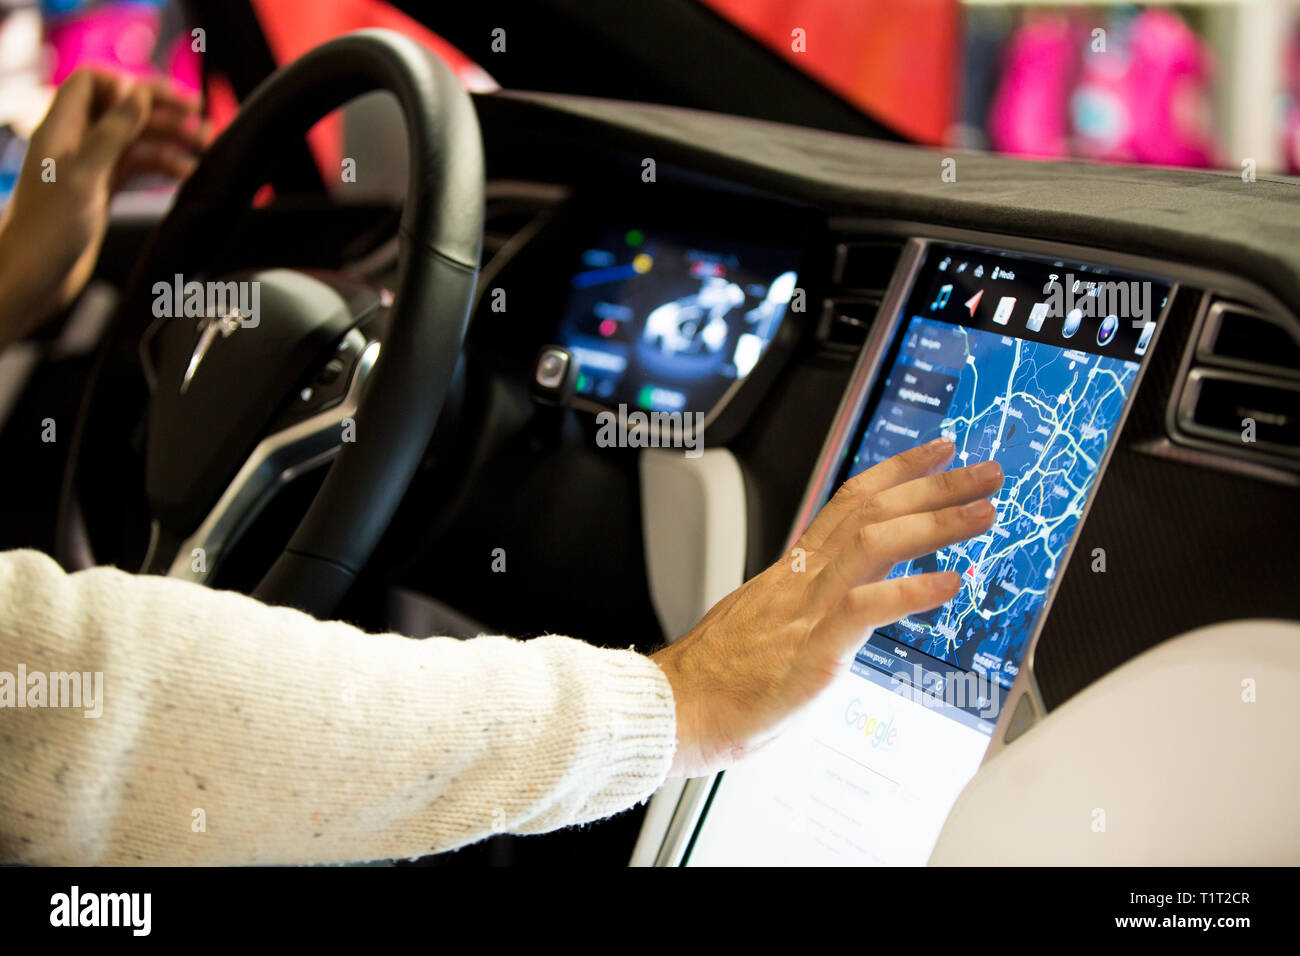 HELSINKI, FINLAND - NOVEMBER 04, 2016: The interior of a Tesla Model X electric car with large touch screen dashboard.  Hand using gps navigation - Stock Image